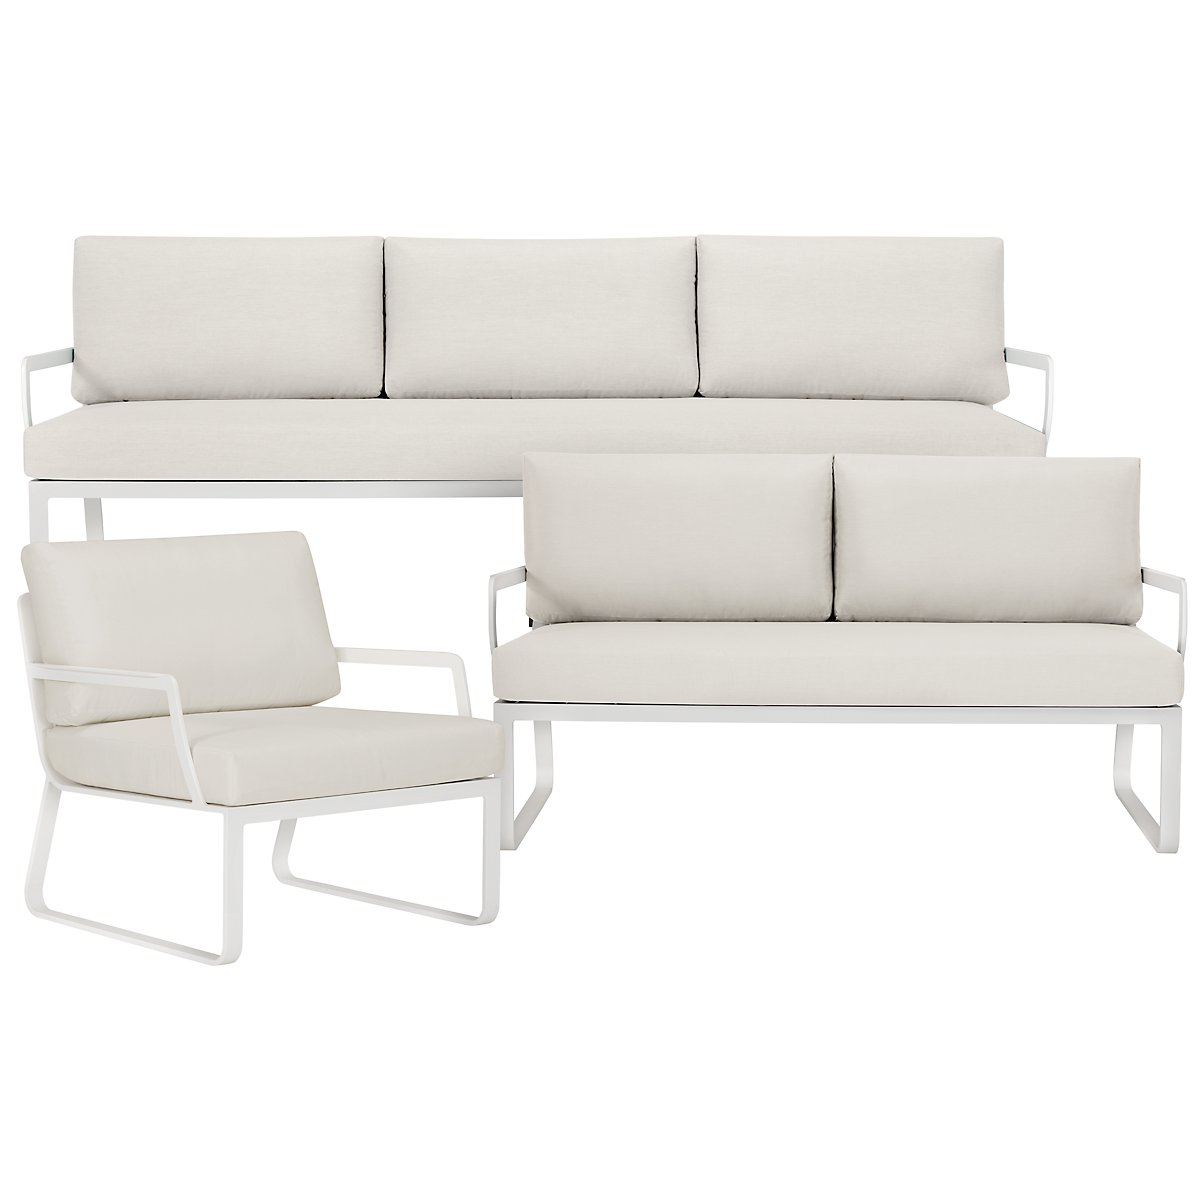 Outdoor Living Room Furniture City Furniture Outdoor Furniture Patio Living Room Sets